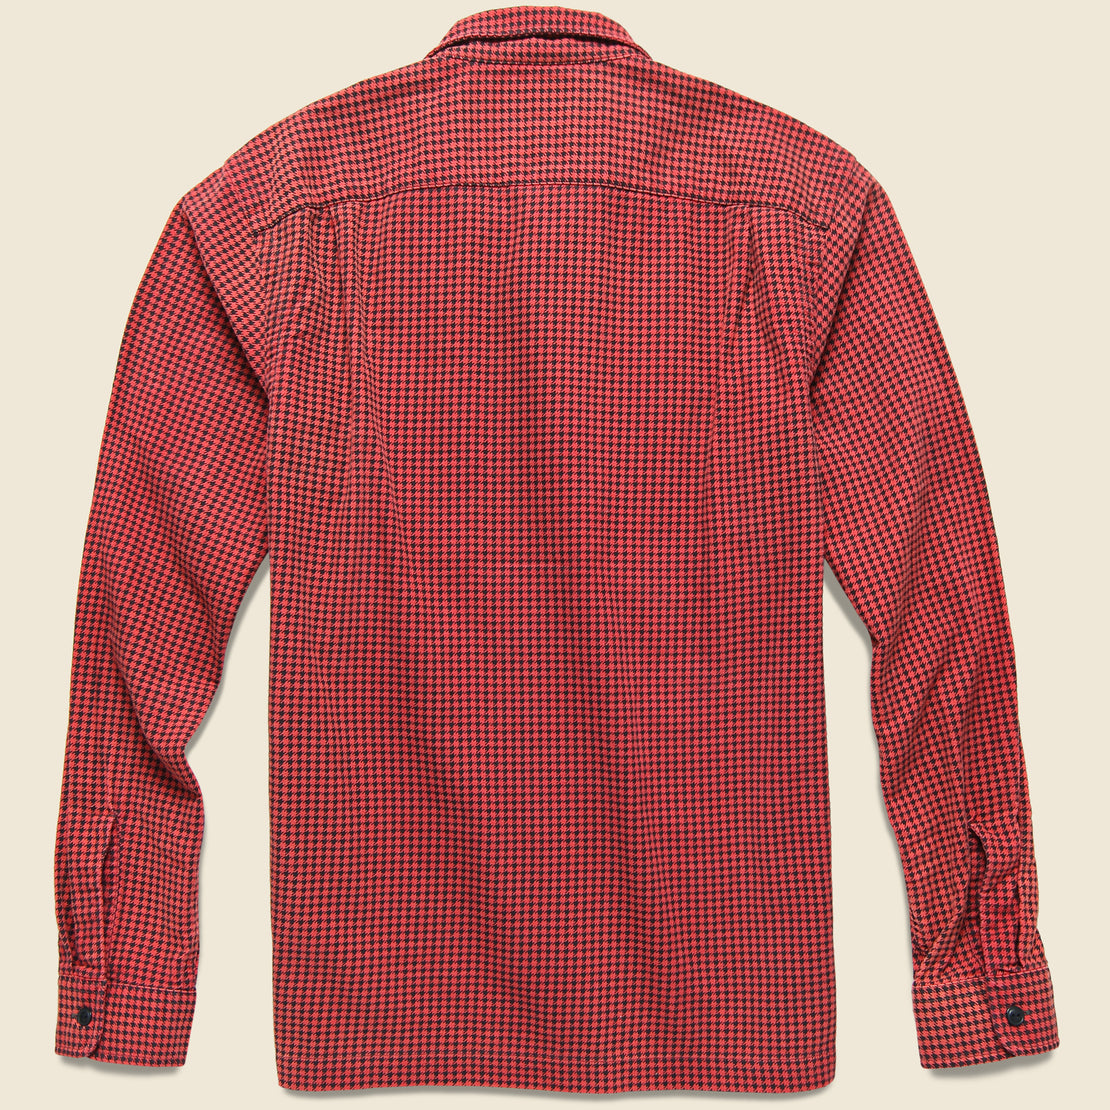 Monterey Houndstooth Check Camp Shirt - Red/Sulphur Black